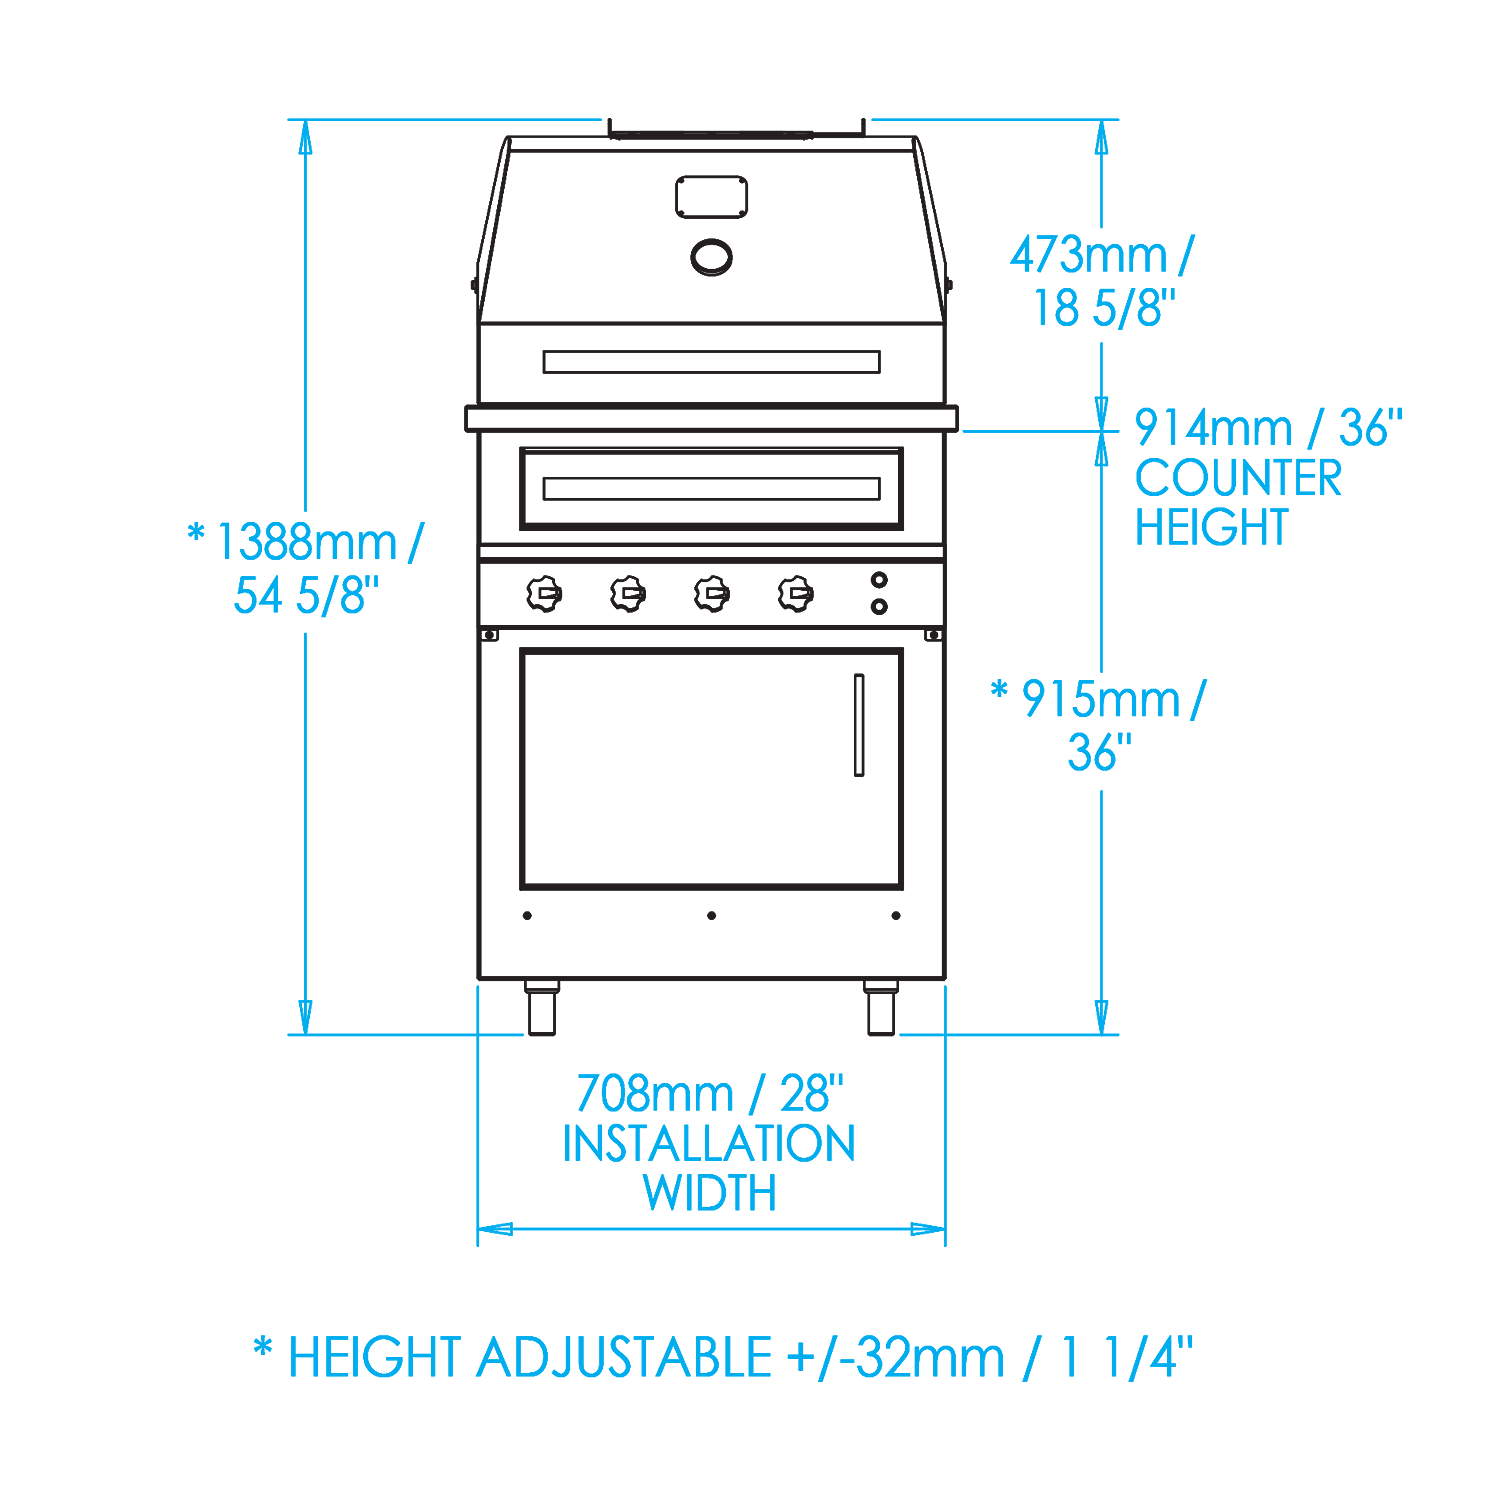 K500 Built-in Hybrid Fire Grill Dimensions Image